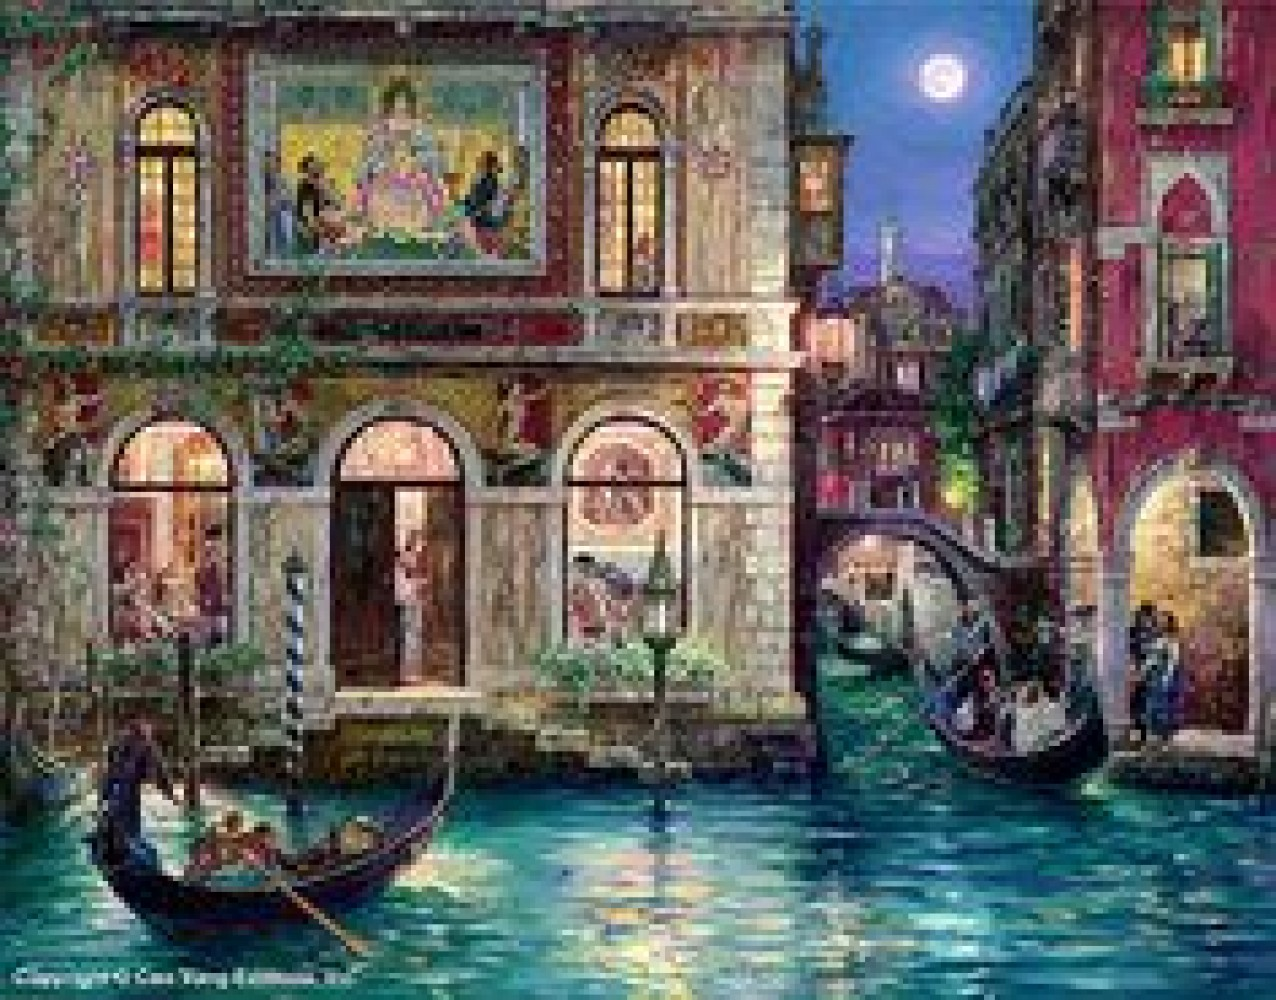 Memories of Venice 2002 Embellished W Remarque